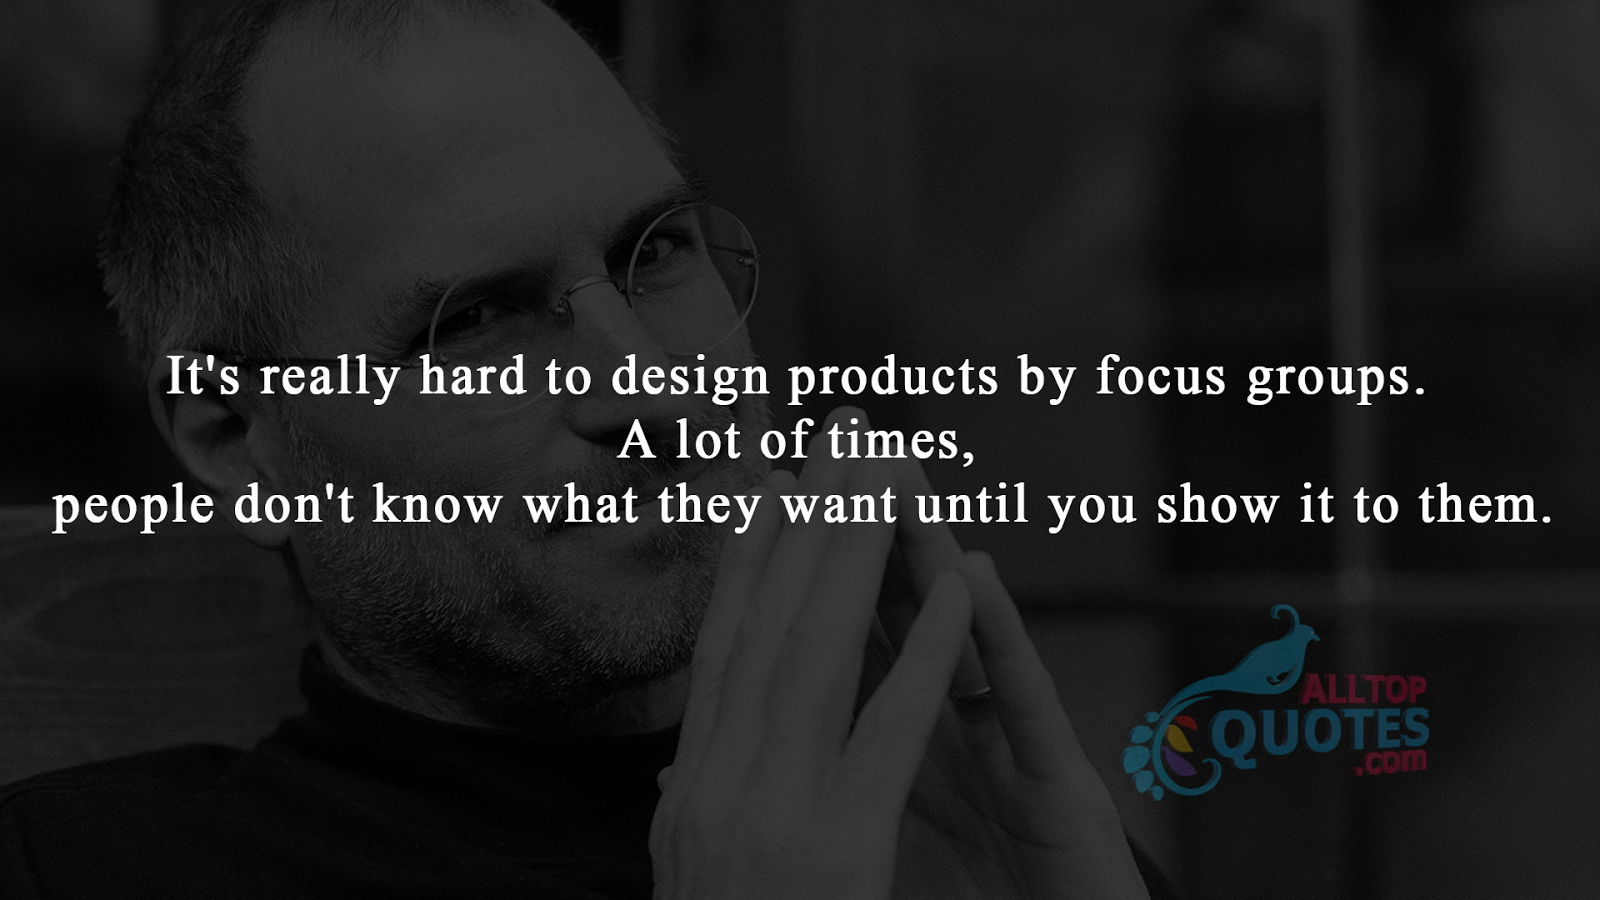 steve jobs inspirational quotes all top quotes telugu